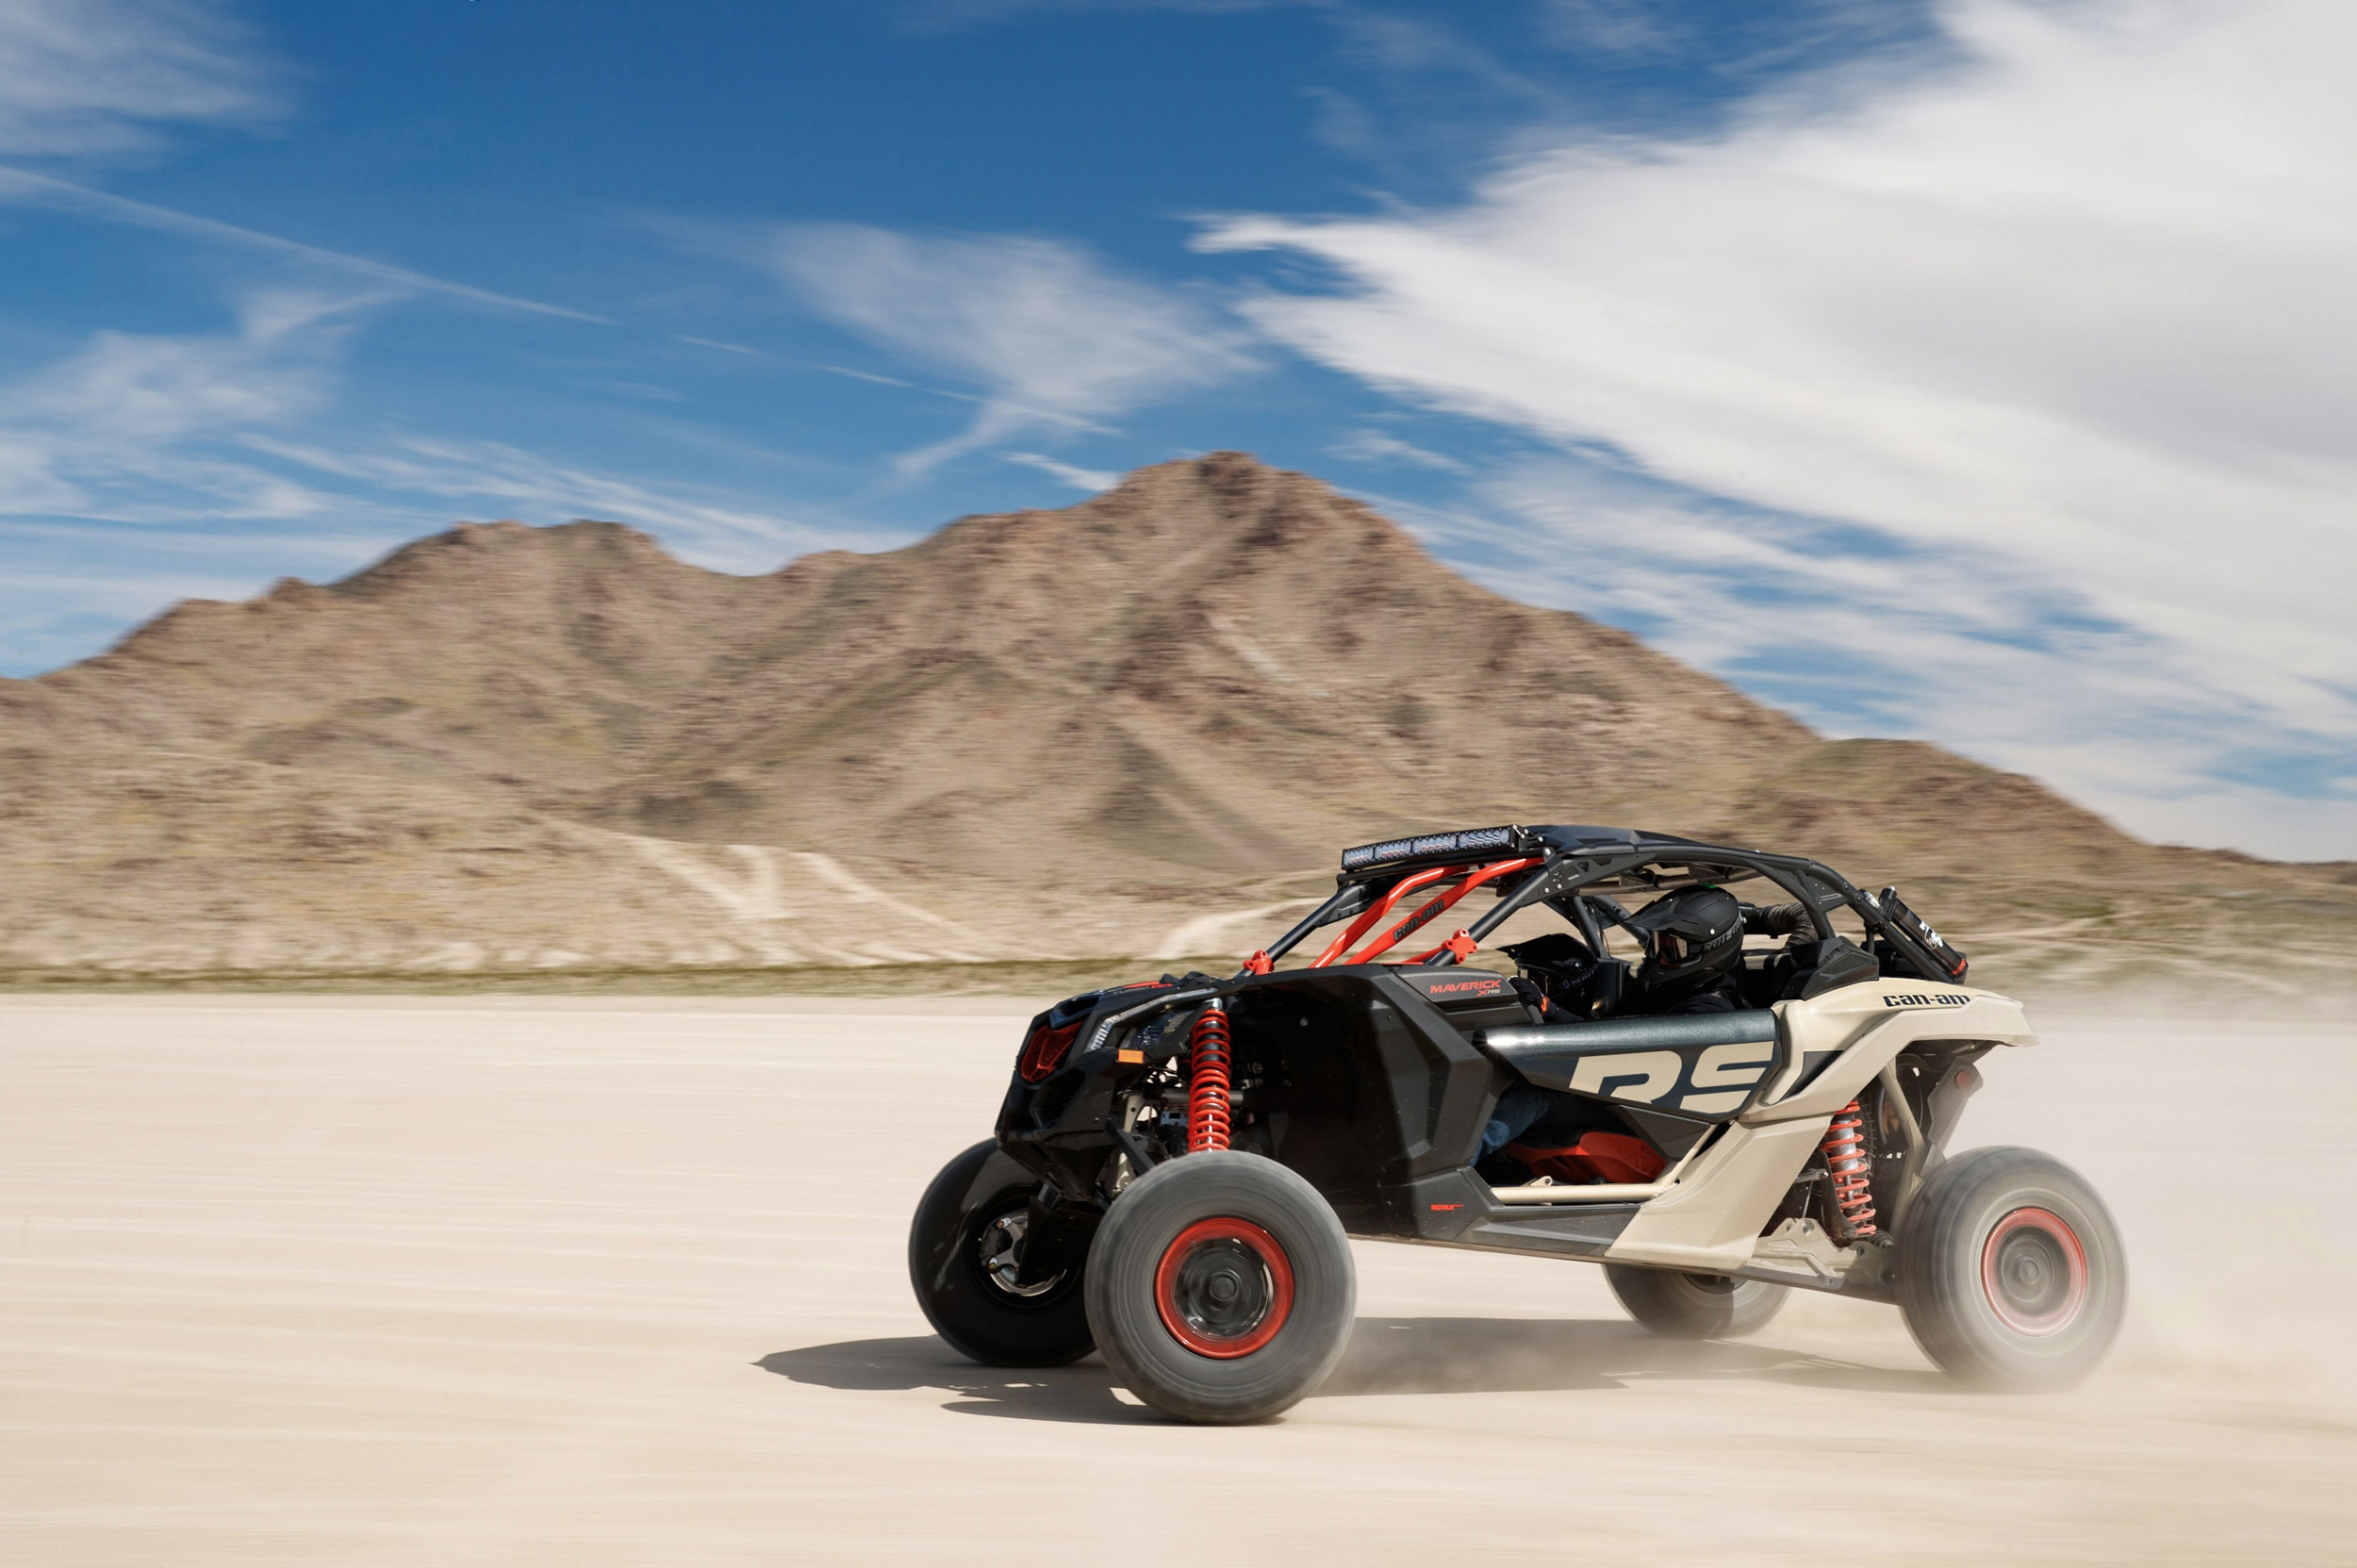 Can-Am Maverick X3 Side-by-side vehicle X rs turbo RR